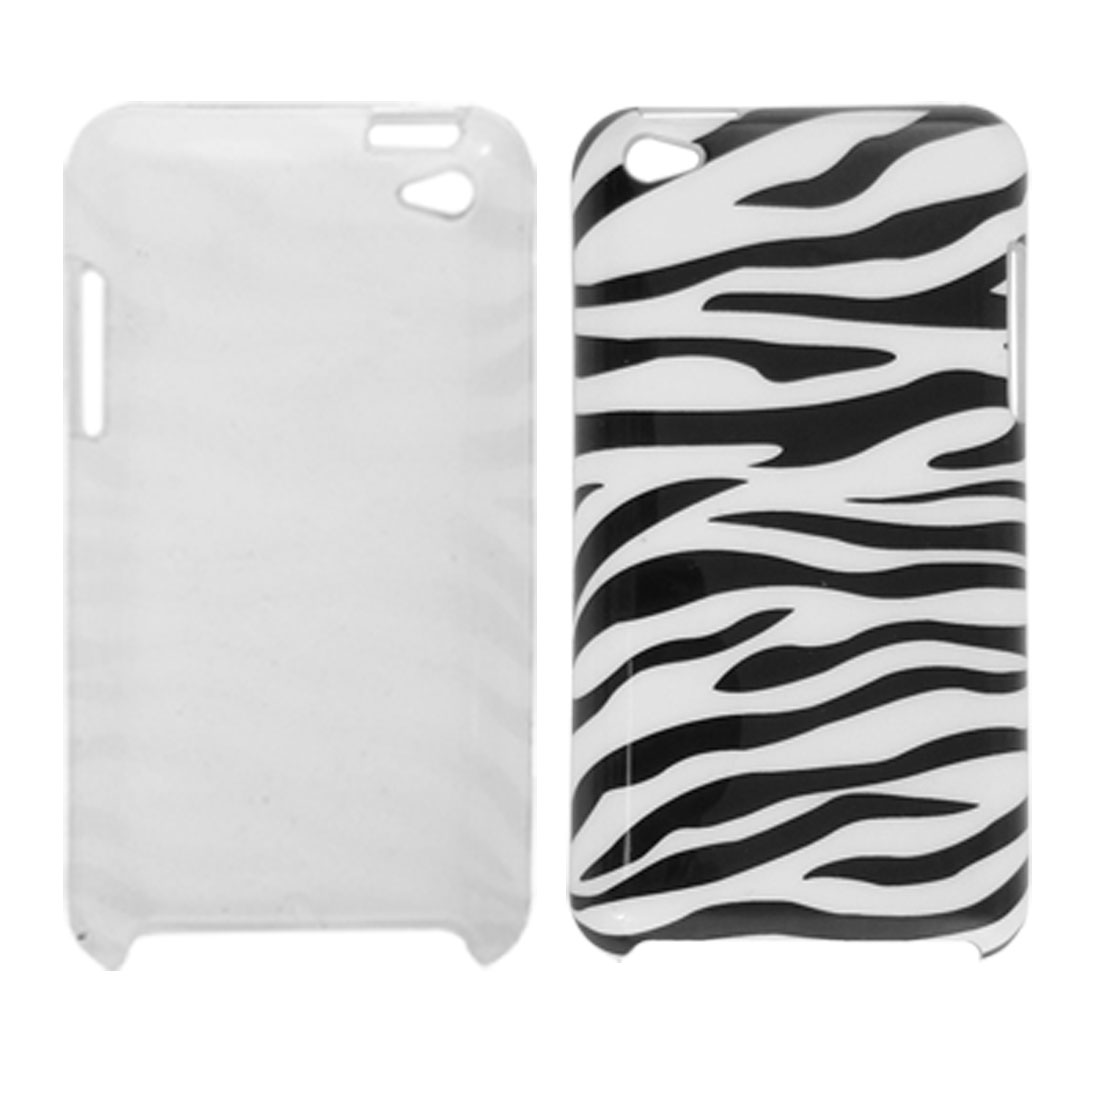 IMD White Black Zebra Print Hard Plastic Back Case for iPod Touch 4G